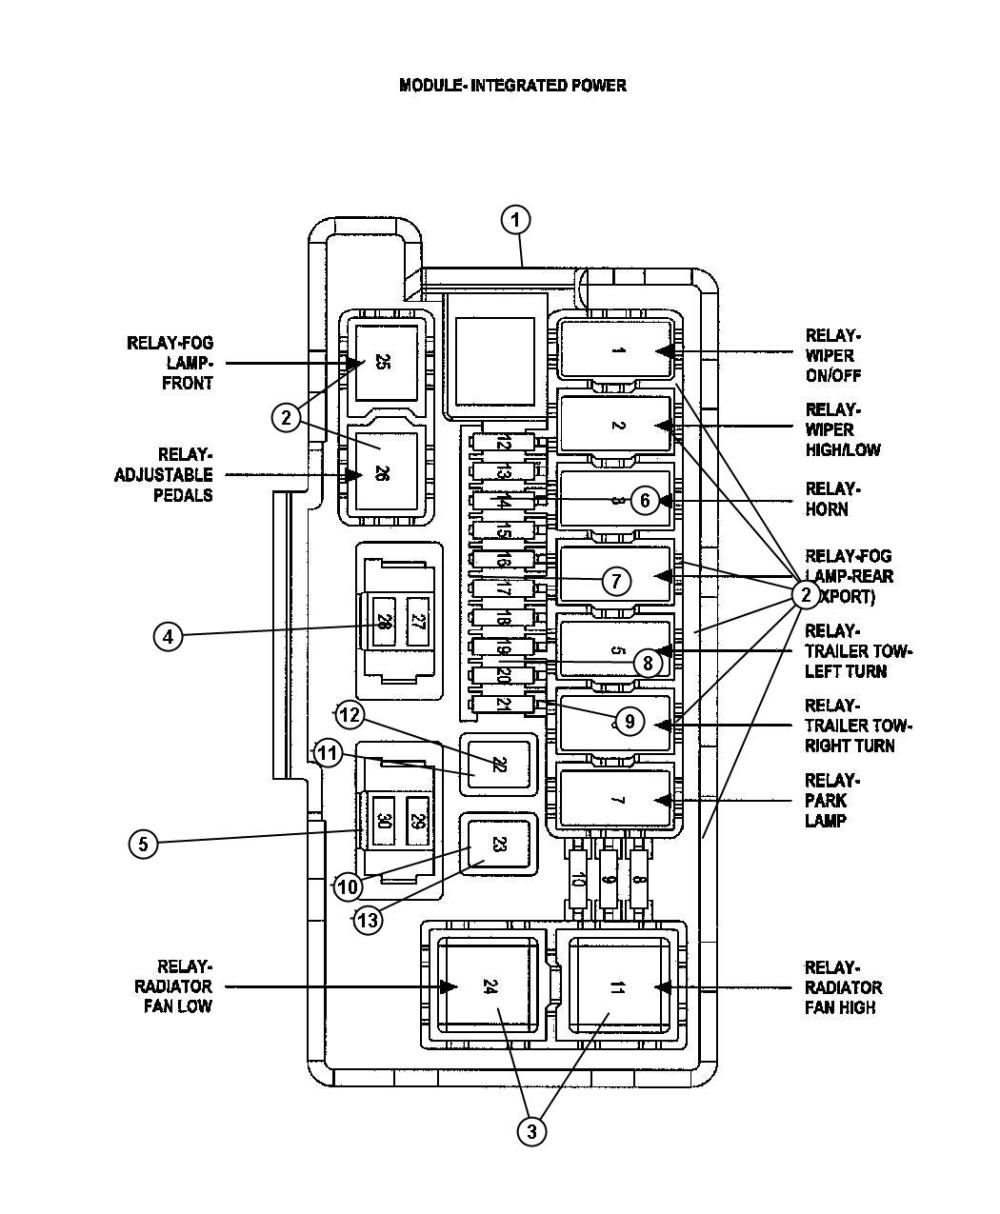 medium resolution of i2163577 jeep stereo wiring diagram jeep free wiring diagrams 2006 jeep commander trailer wiring diagram at